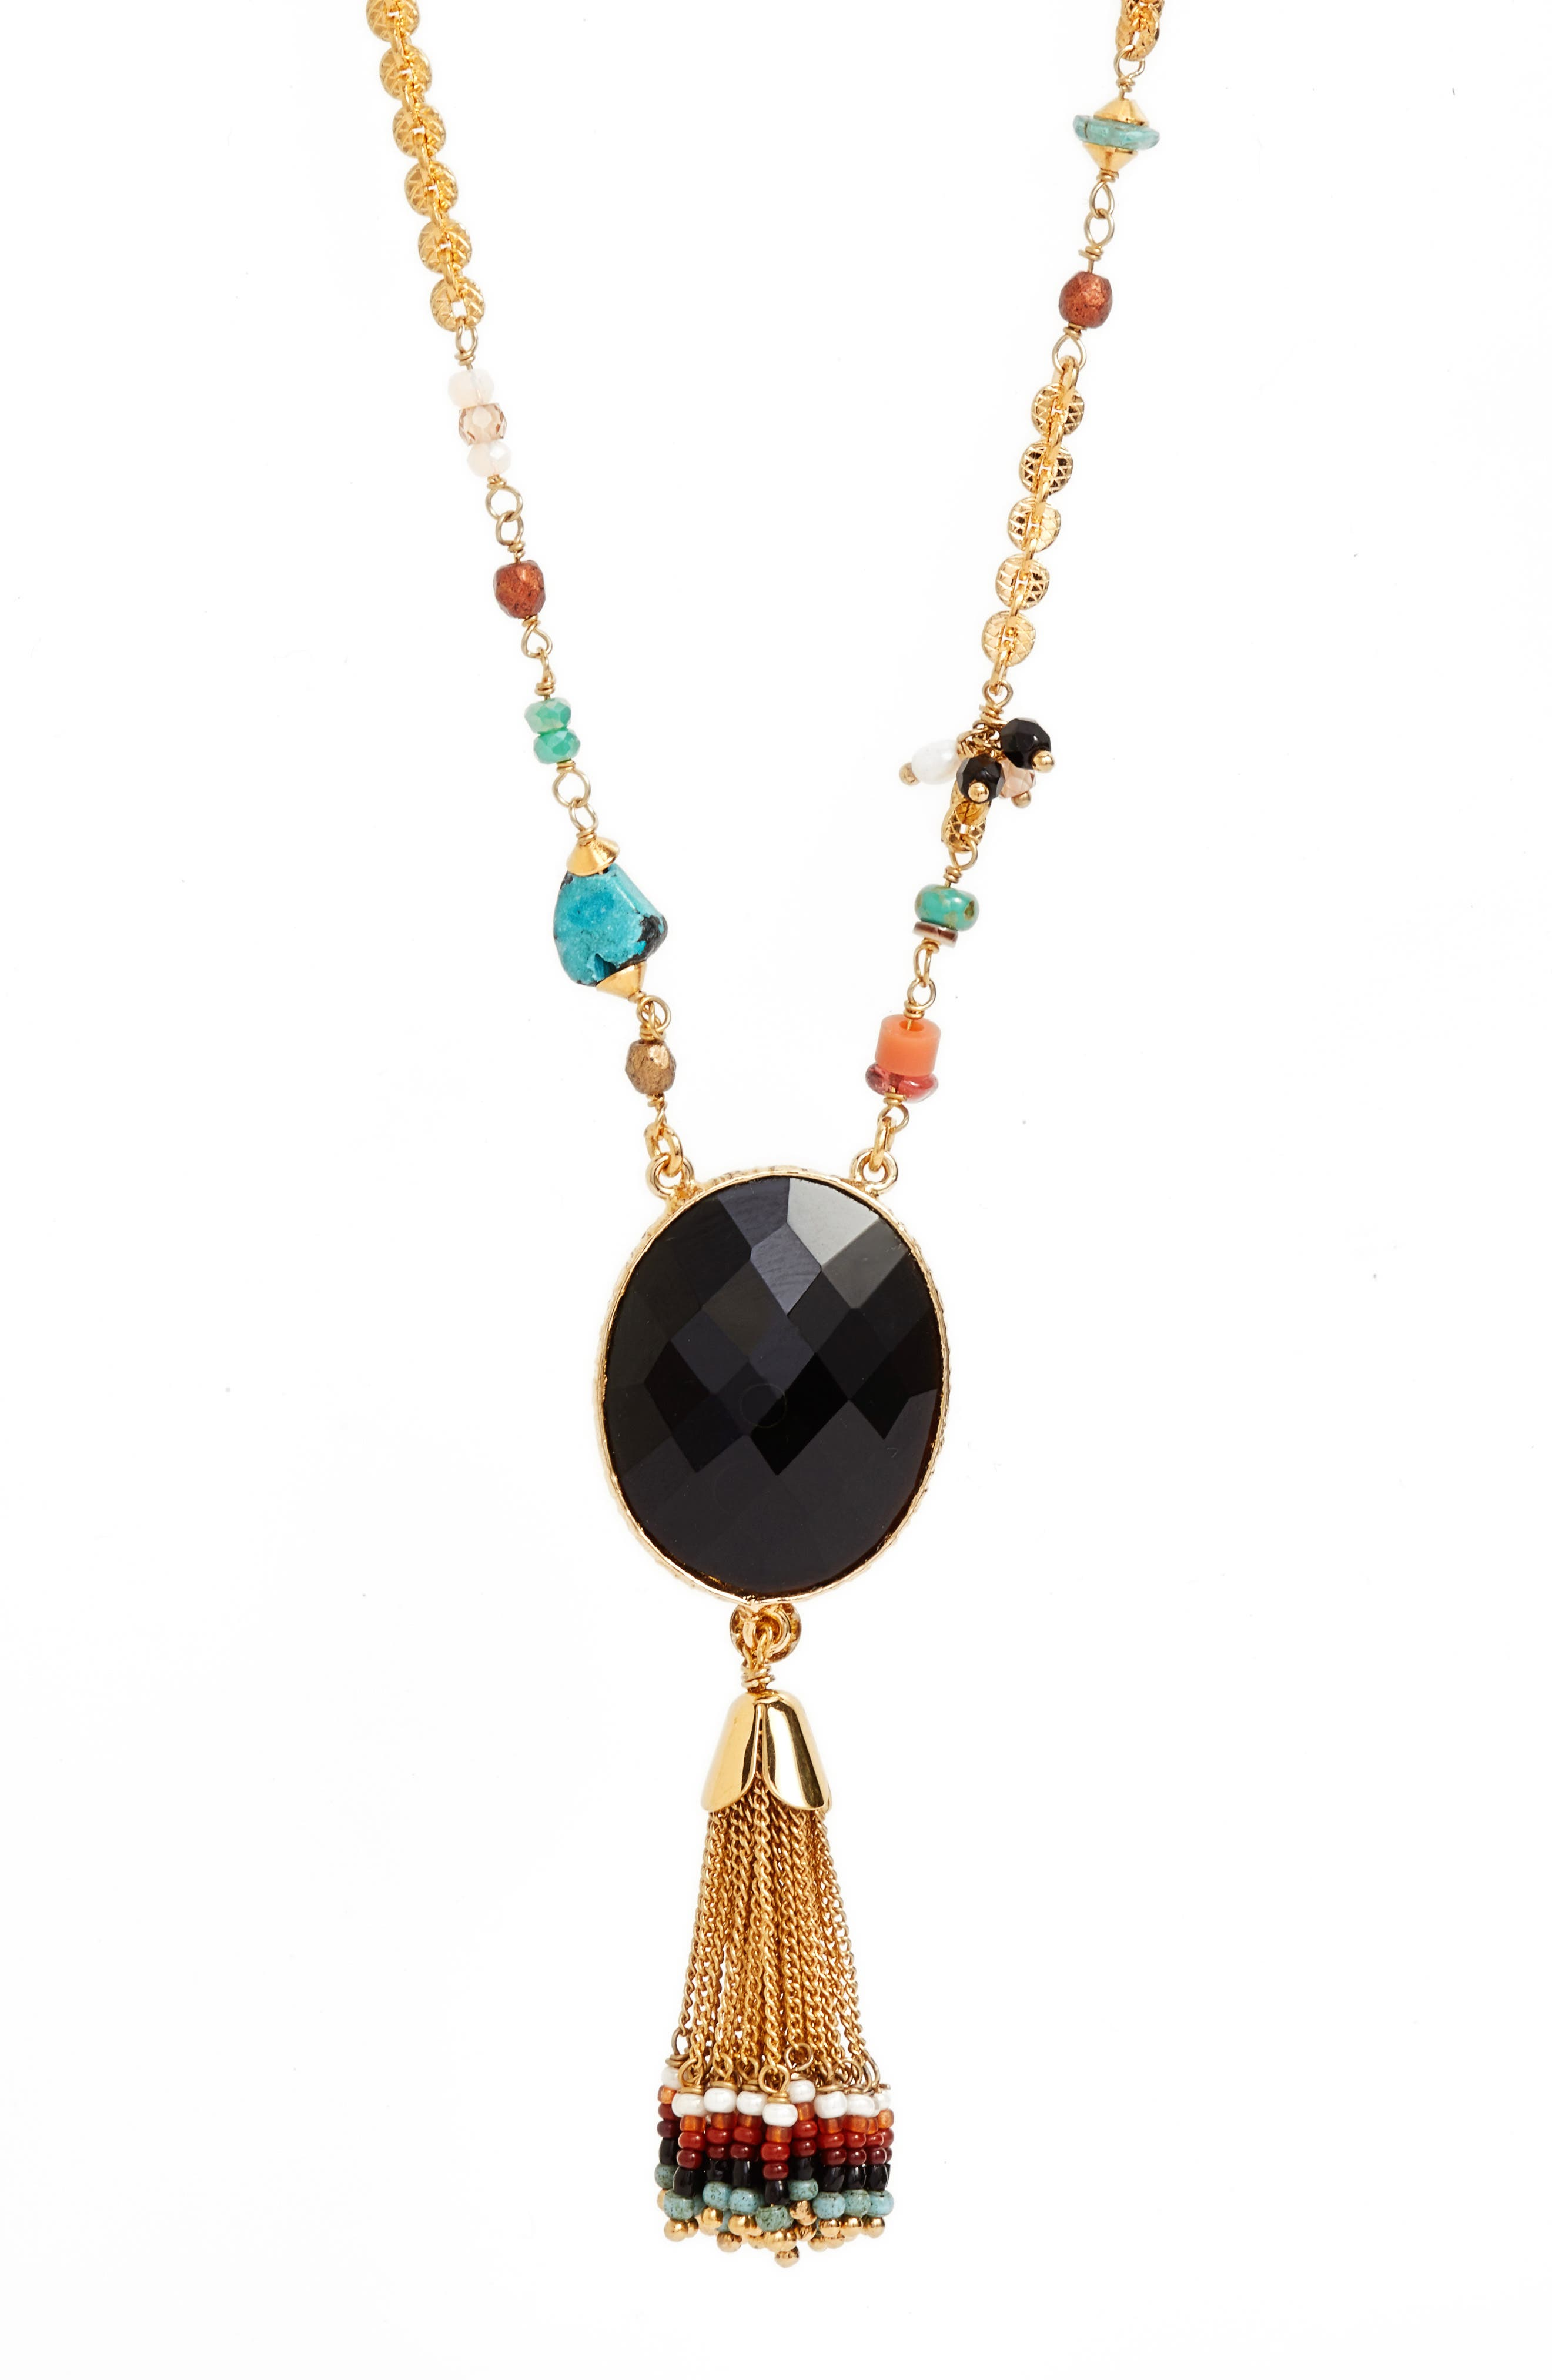 Serti Holly Long Tassel Necklace,                             Alternate thumbnail 2, color,                             Black/ Gold